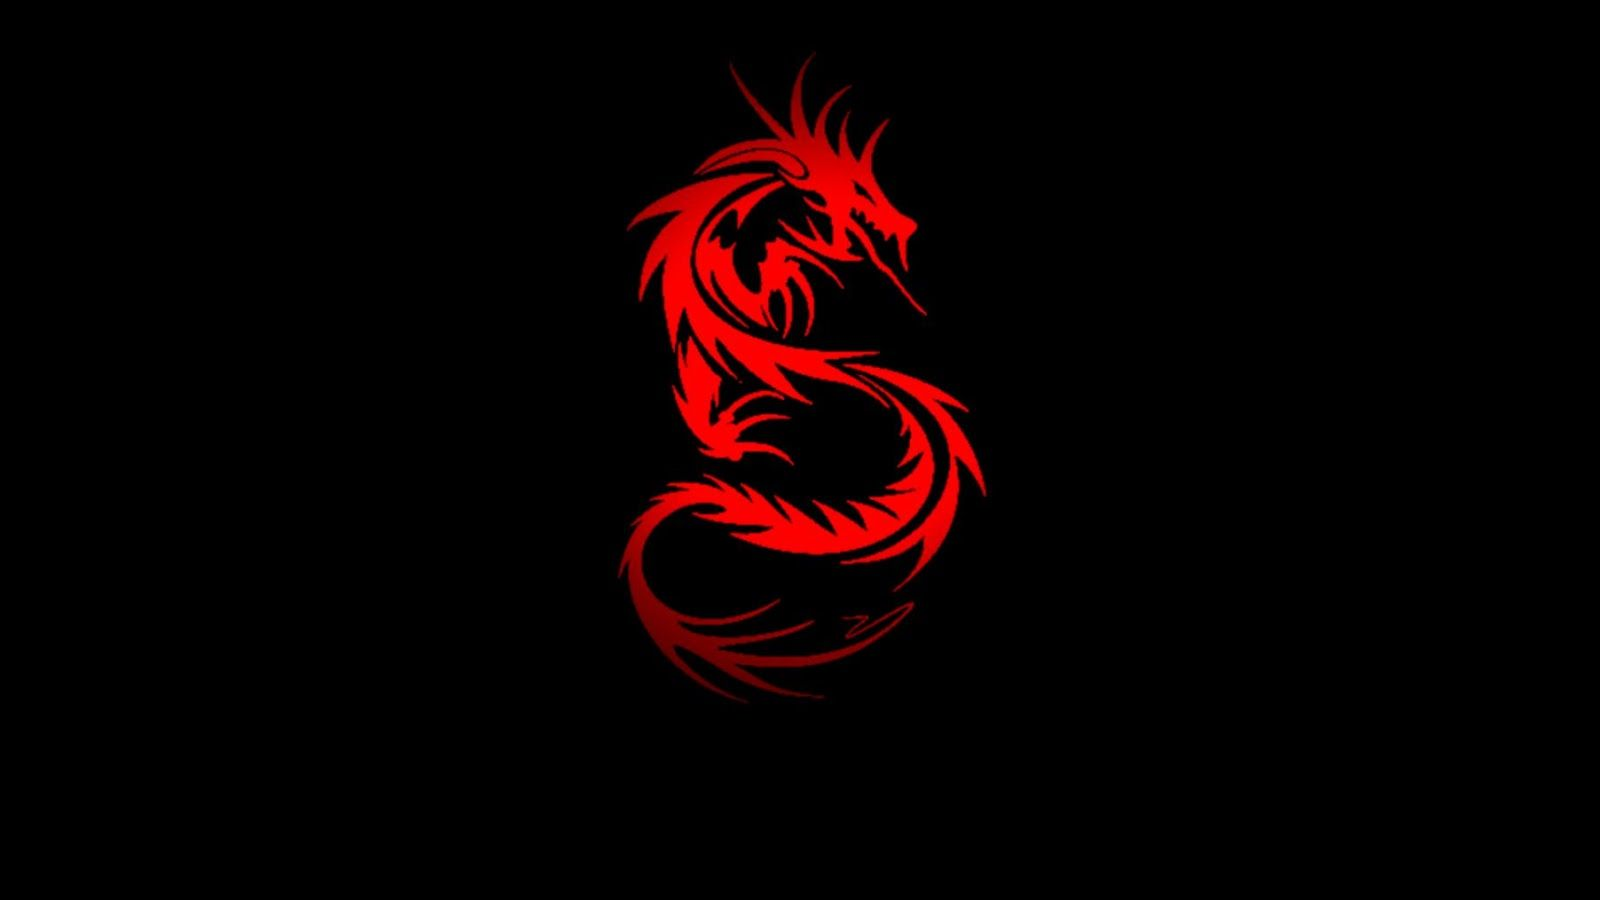 Black Dragon Wallpaper HD 1000×800 Black Dragon Wallpapers